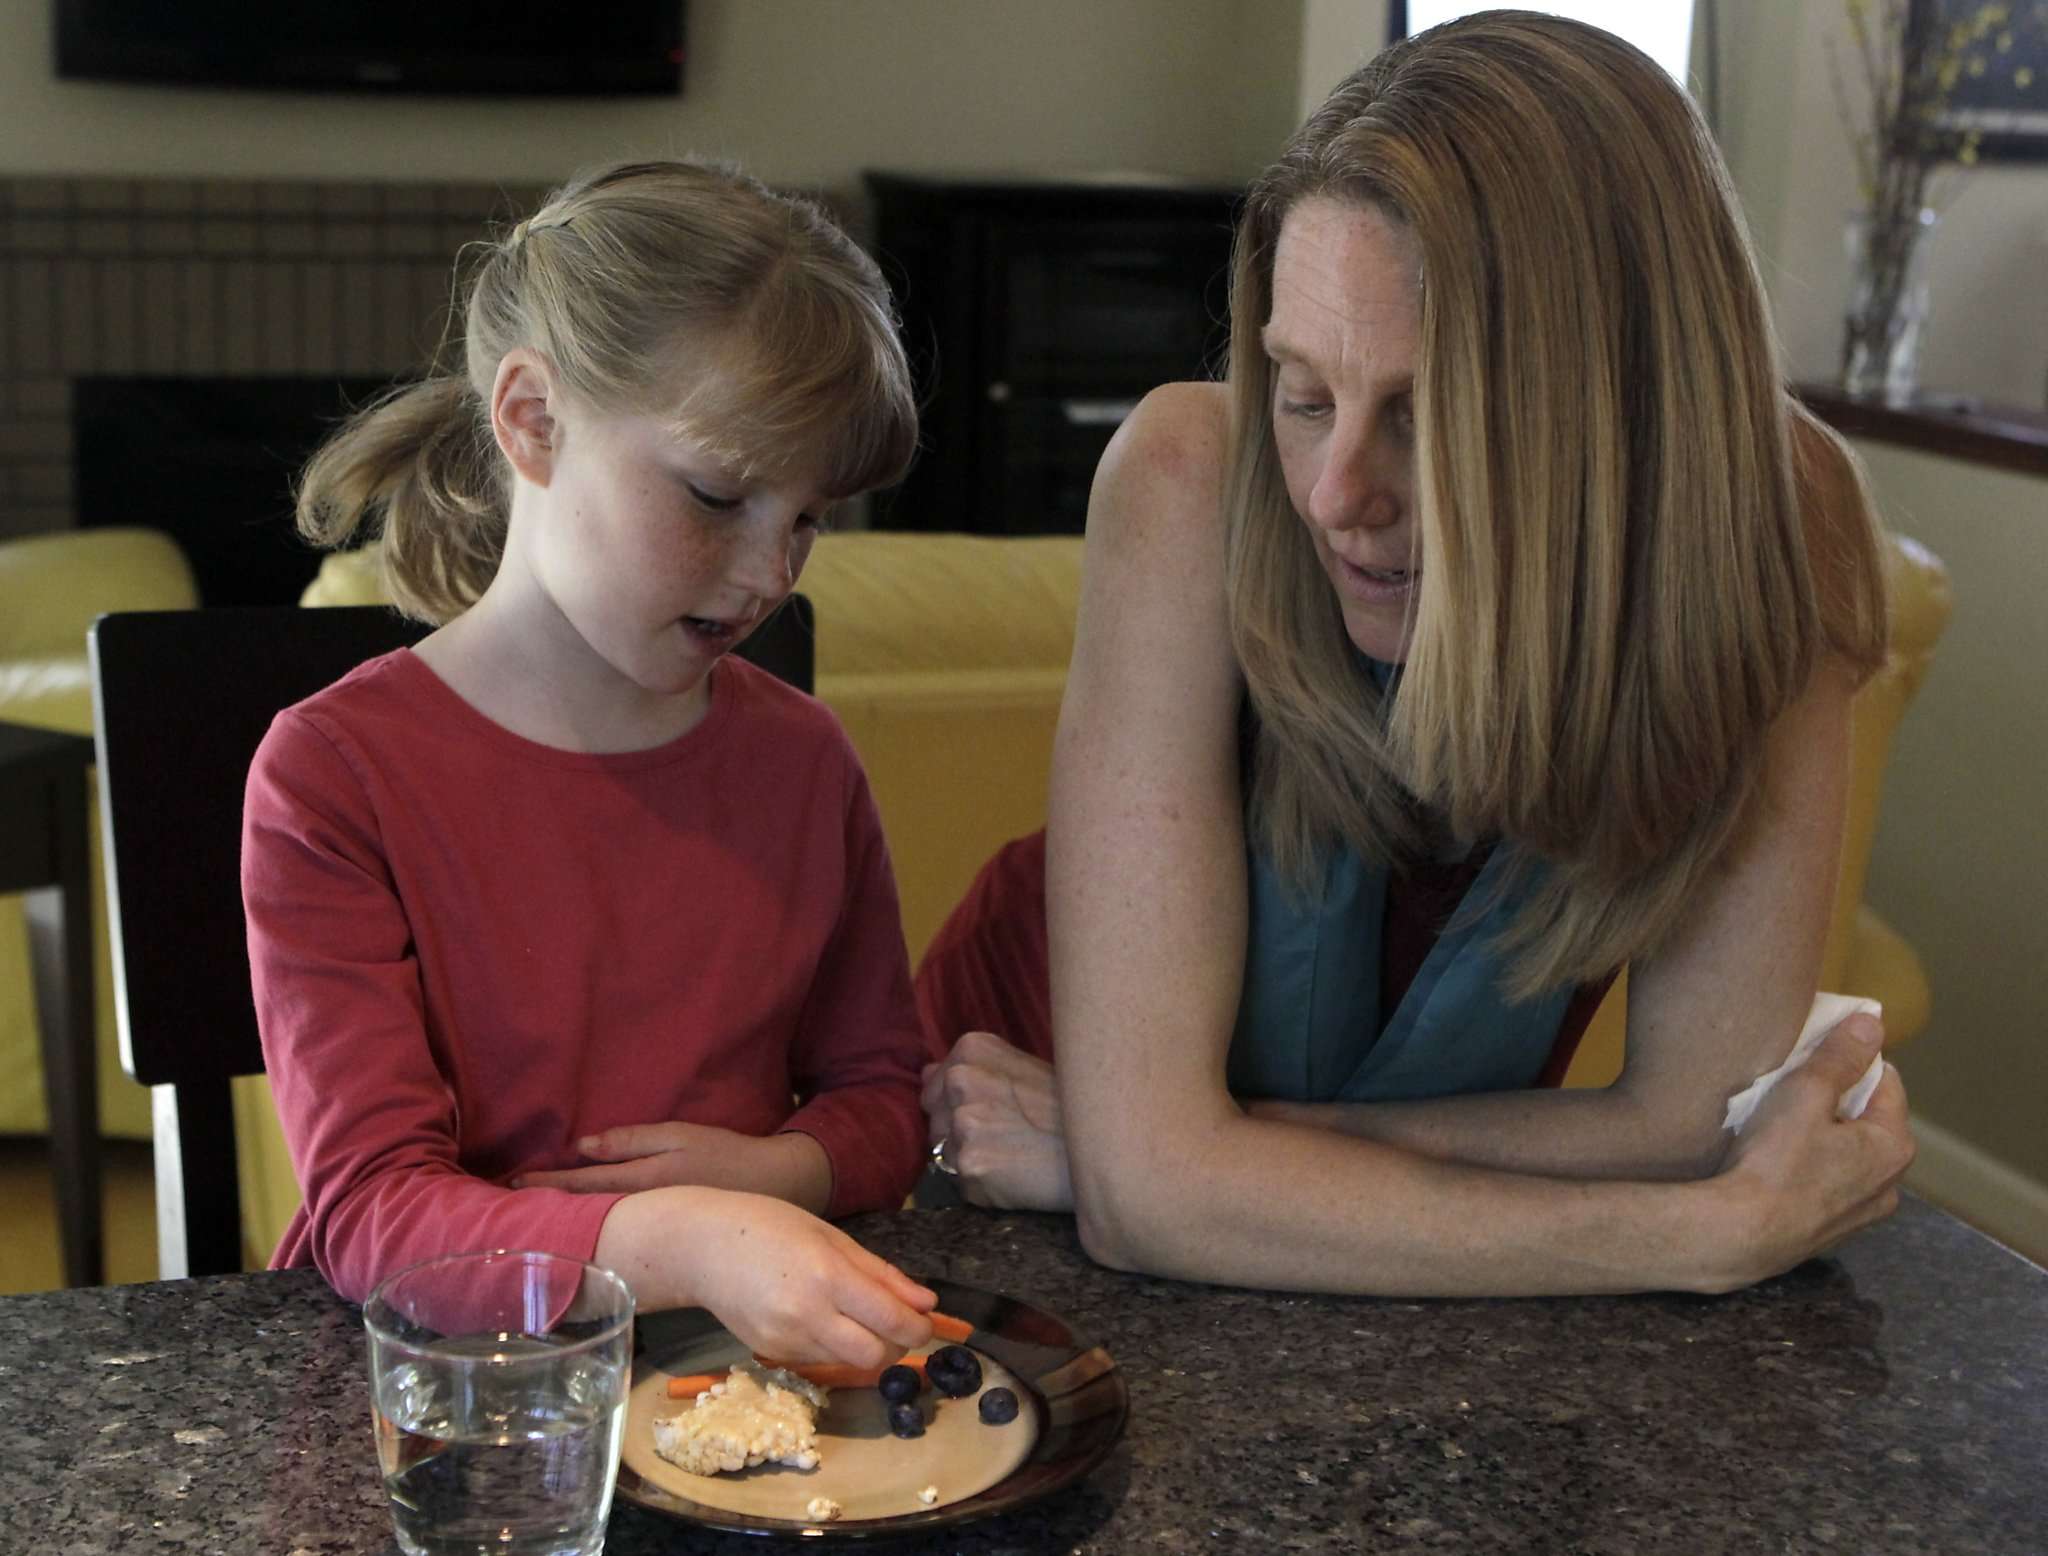 Chemist says omitting MSG cured daughter s autism SFGate